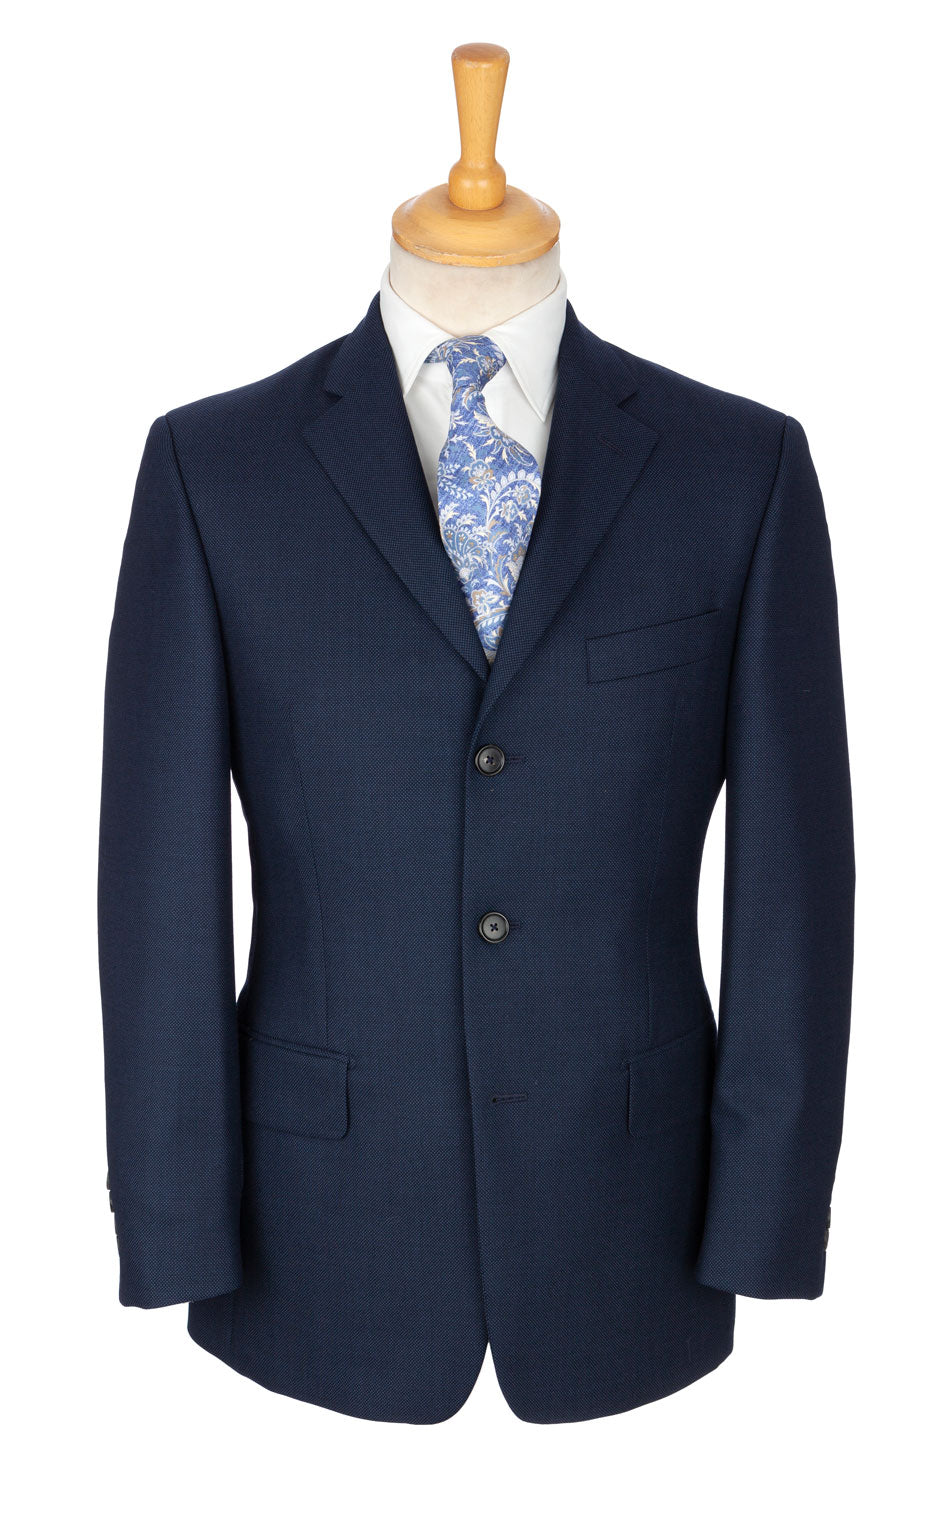 Luxury blue Scottish mastercrafted cloth suit designed exclusively by Regent. The Regent Matt sports an incredible, discrete cloth that has a special movement to it, almost oil-like.